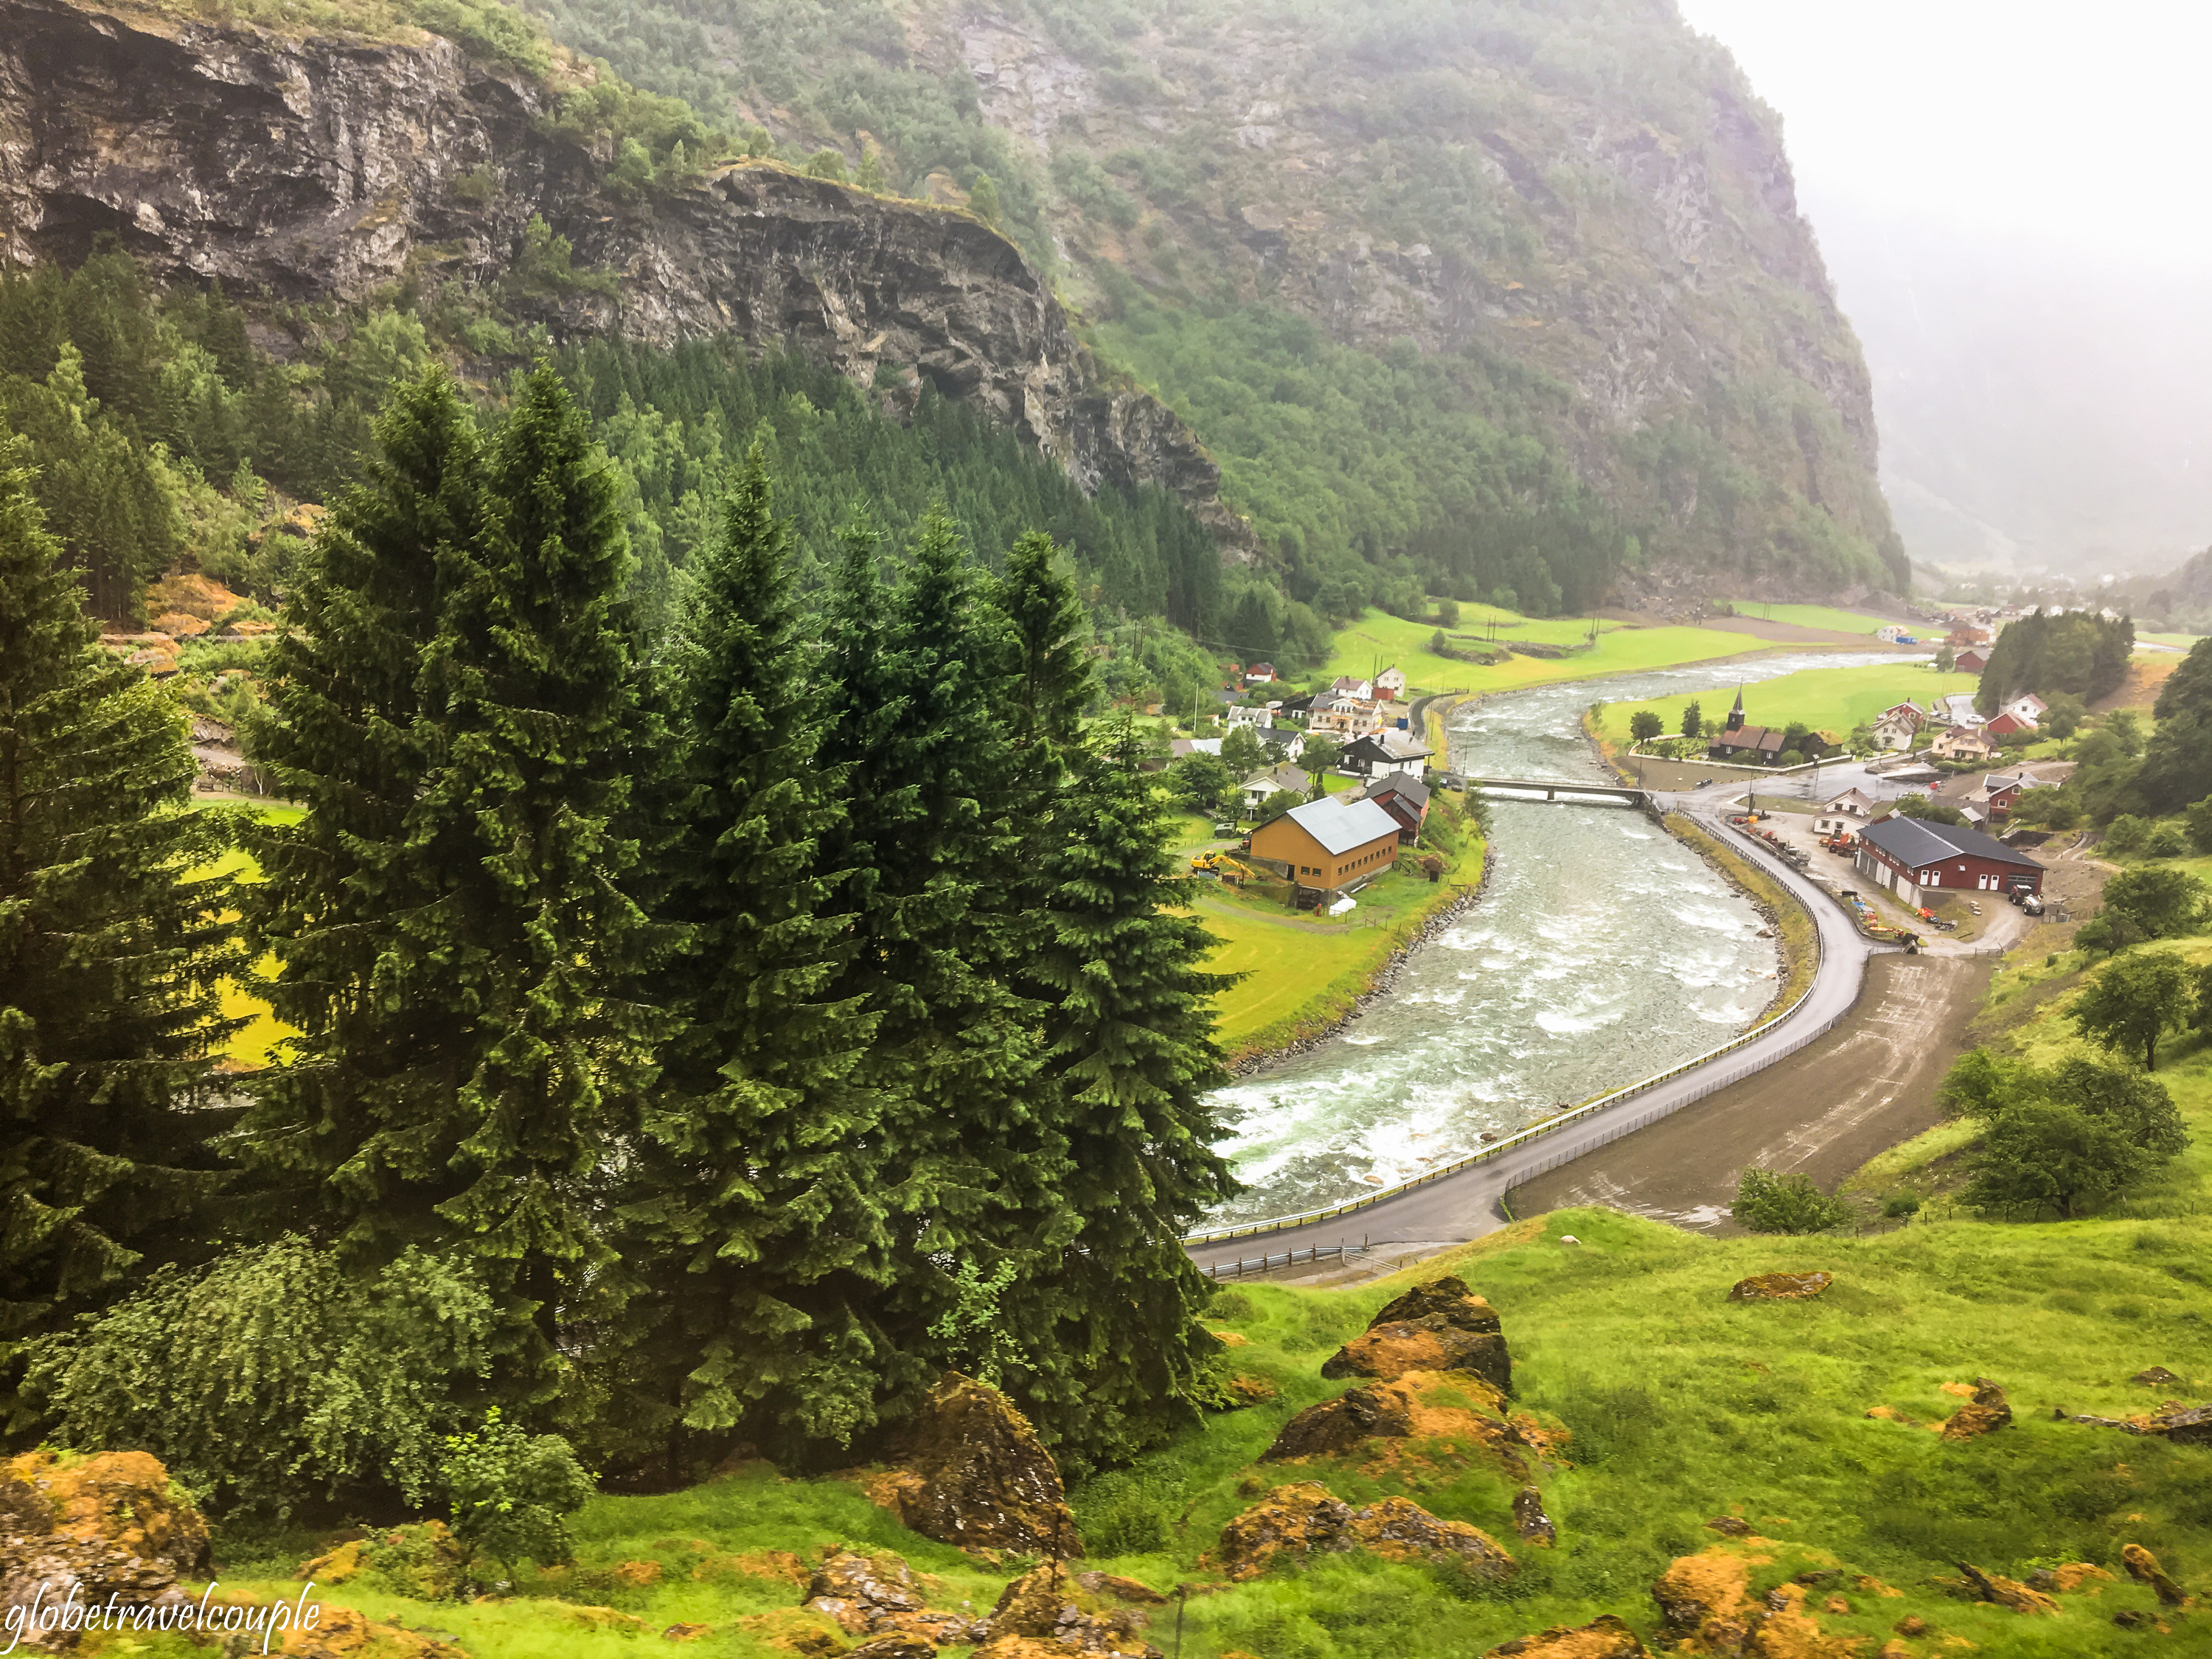 Picturesque views in Flam